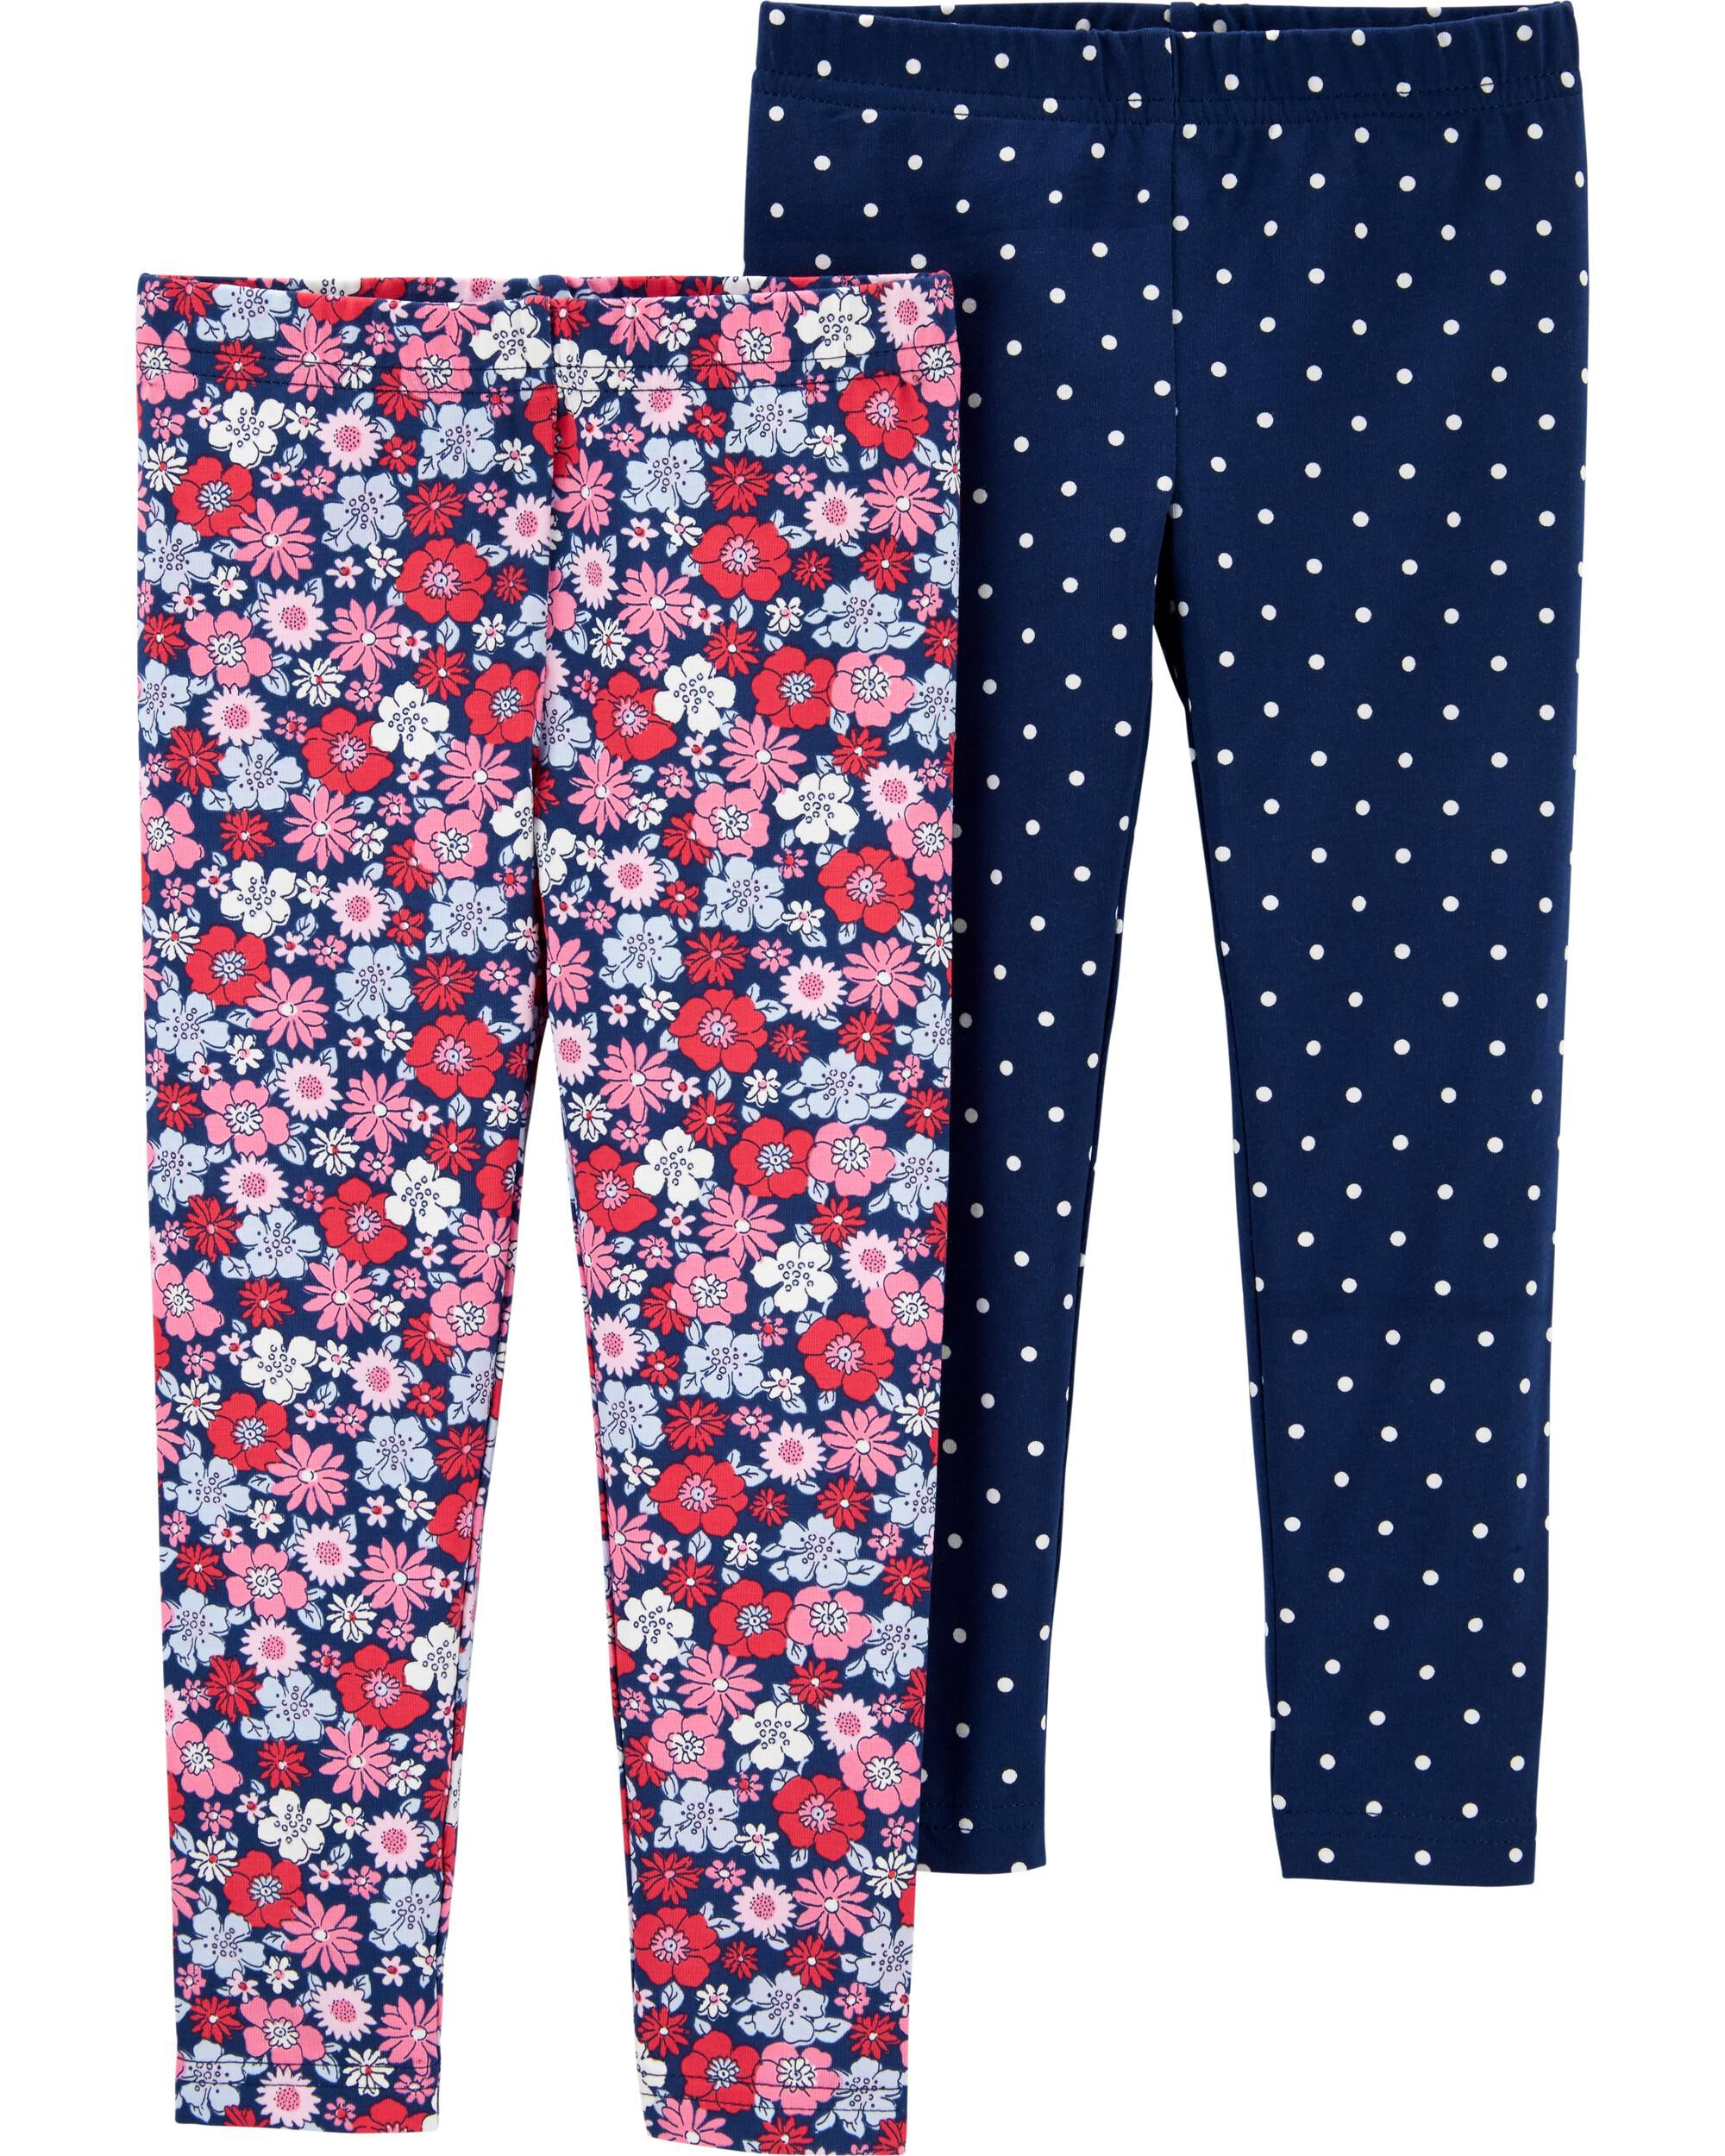 2-Pack Floral & Polka Dot Leggings